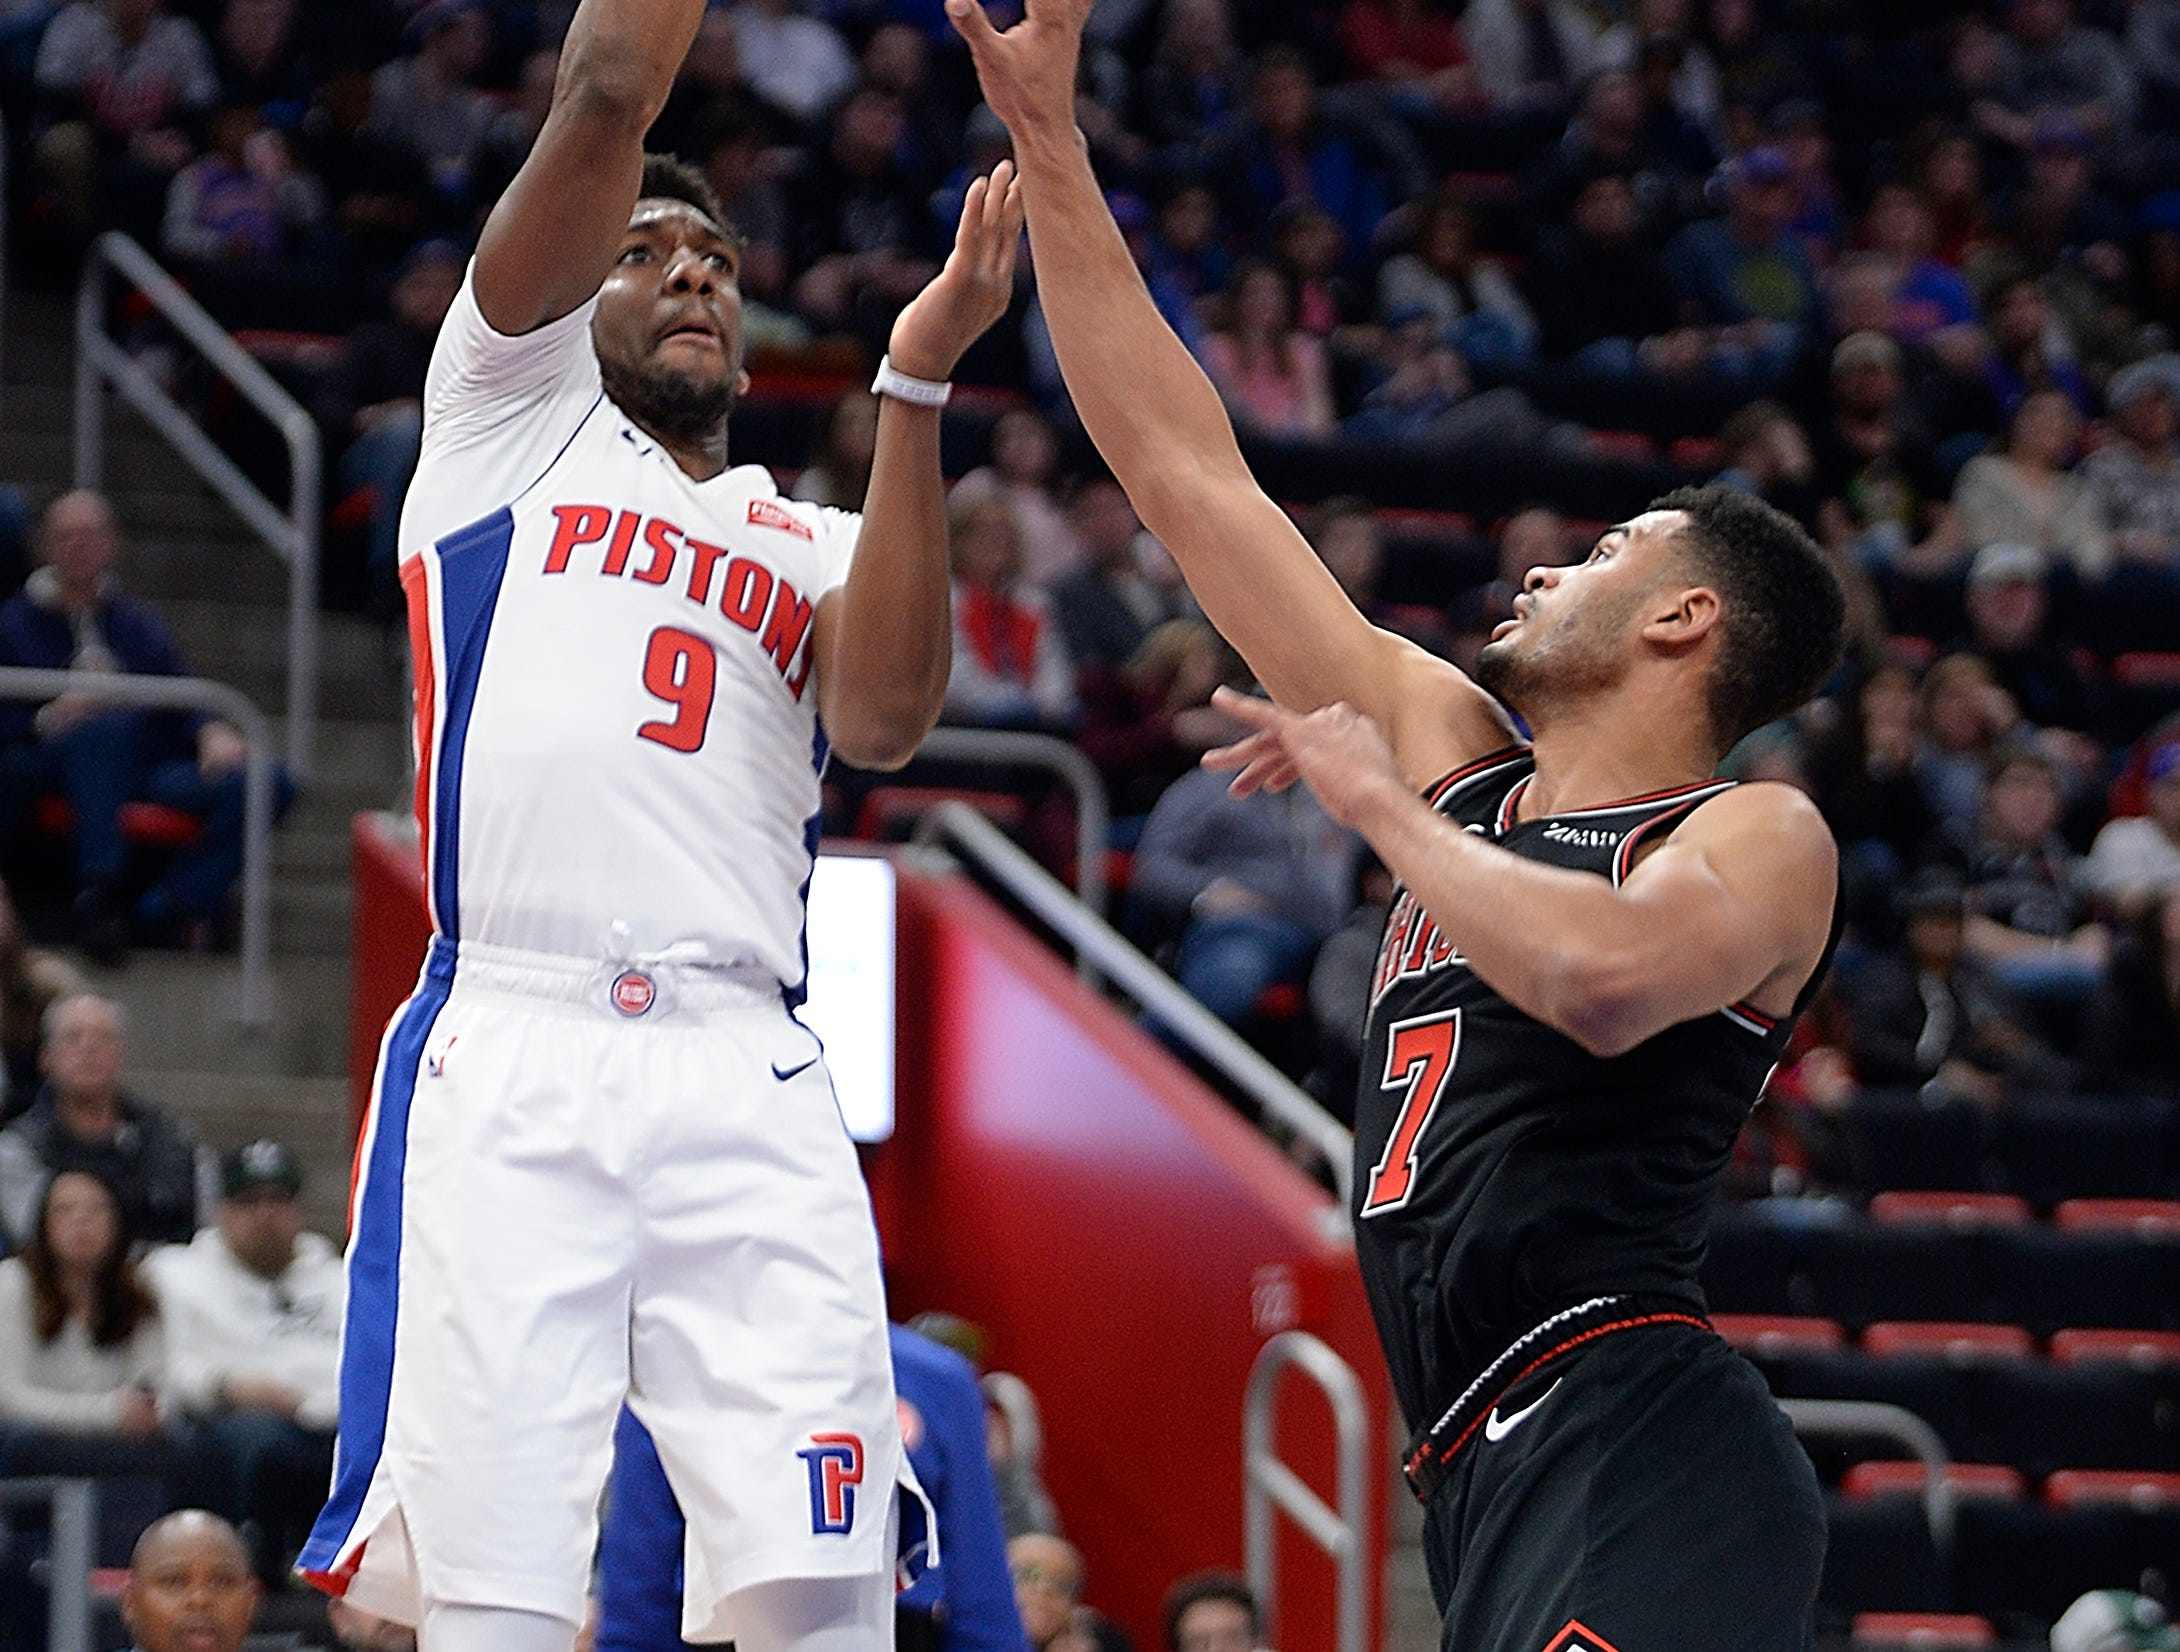 Pistons' Langston Galloway scores over Bulls' Timothe Luwawu-Cabarrot in the fourth quarter. Galloway had 21 points on 6-6 shooting on 3-point baskets. The Pistons defeated the Bulls 131-108, Sunday, March 10, 2019 at Little Caesars Arena in Detroit, Michigan.